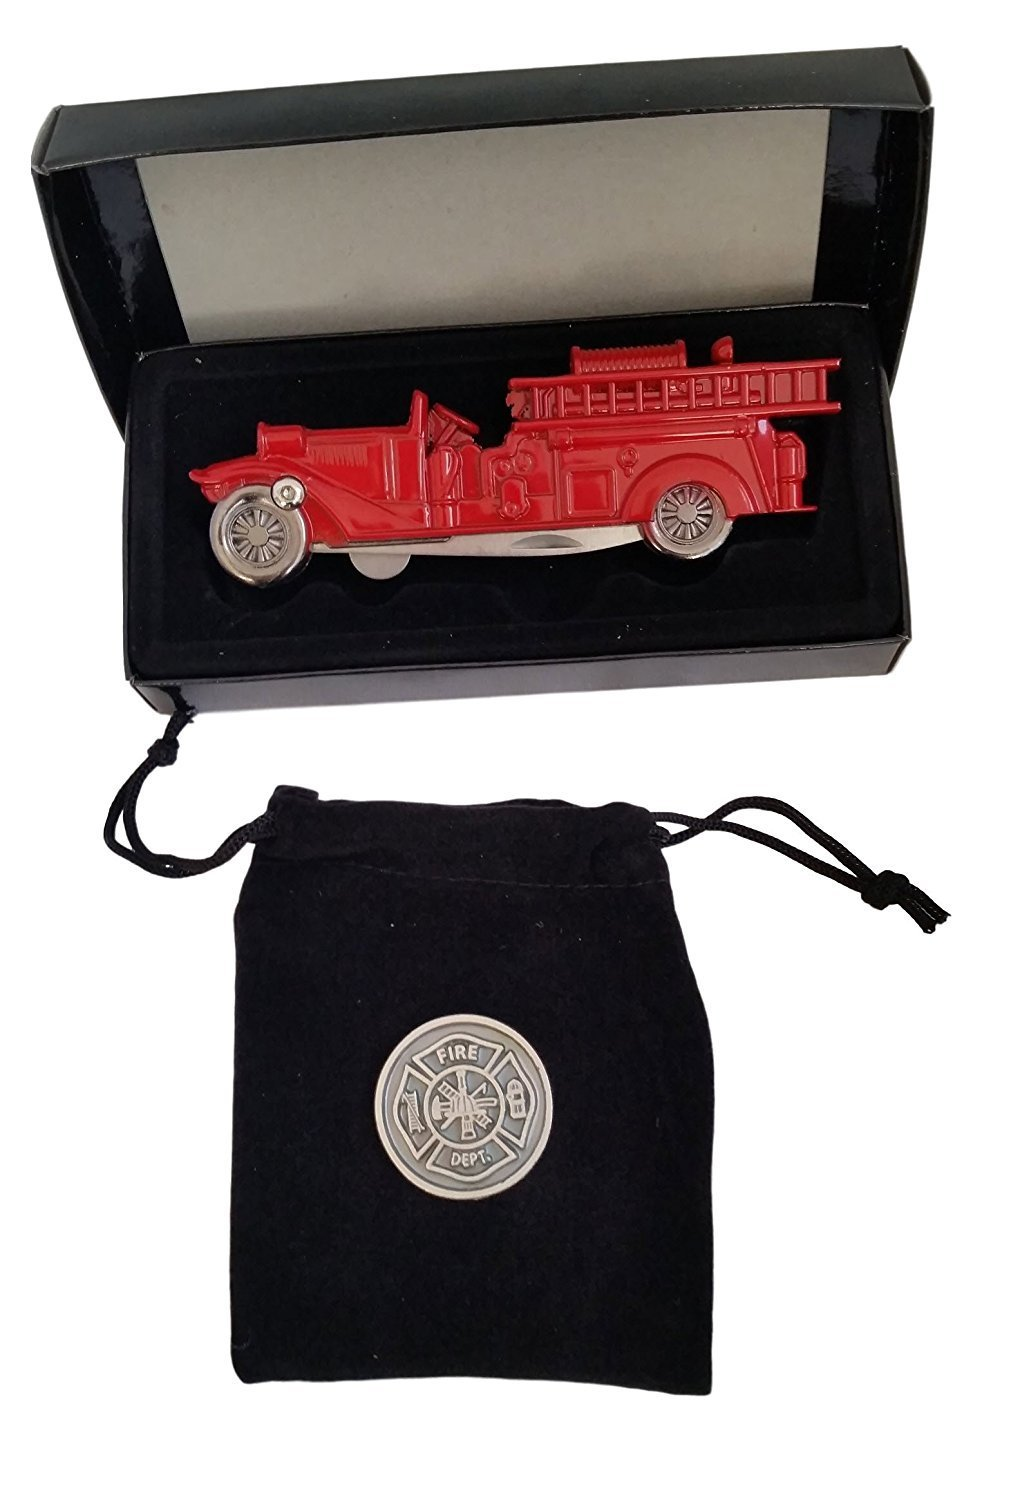 Firefighters Gifts For Men or Women - Firemans Gifts of Prayer Coin & Firetruck Pocket Knife Bundle 00003